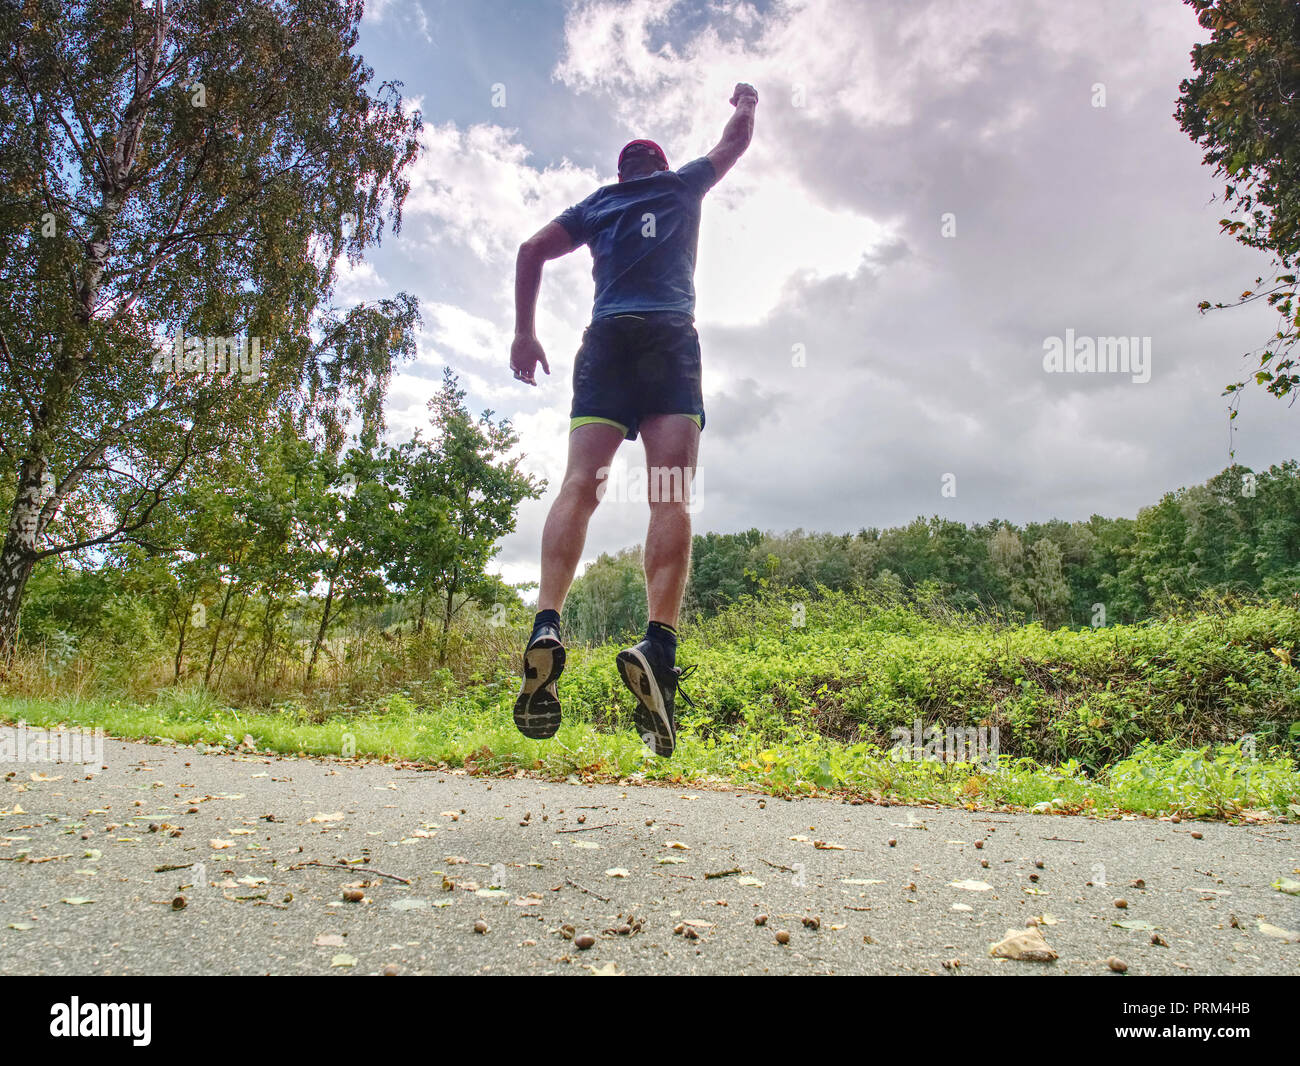 Attractive and tall runner man in slim sportswear running and training on jogging outdoors workout in city park with trees and yellow leaves - Stock Image